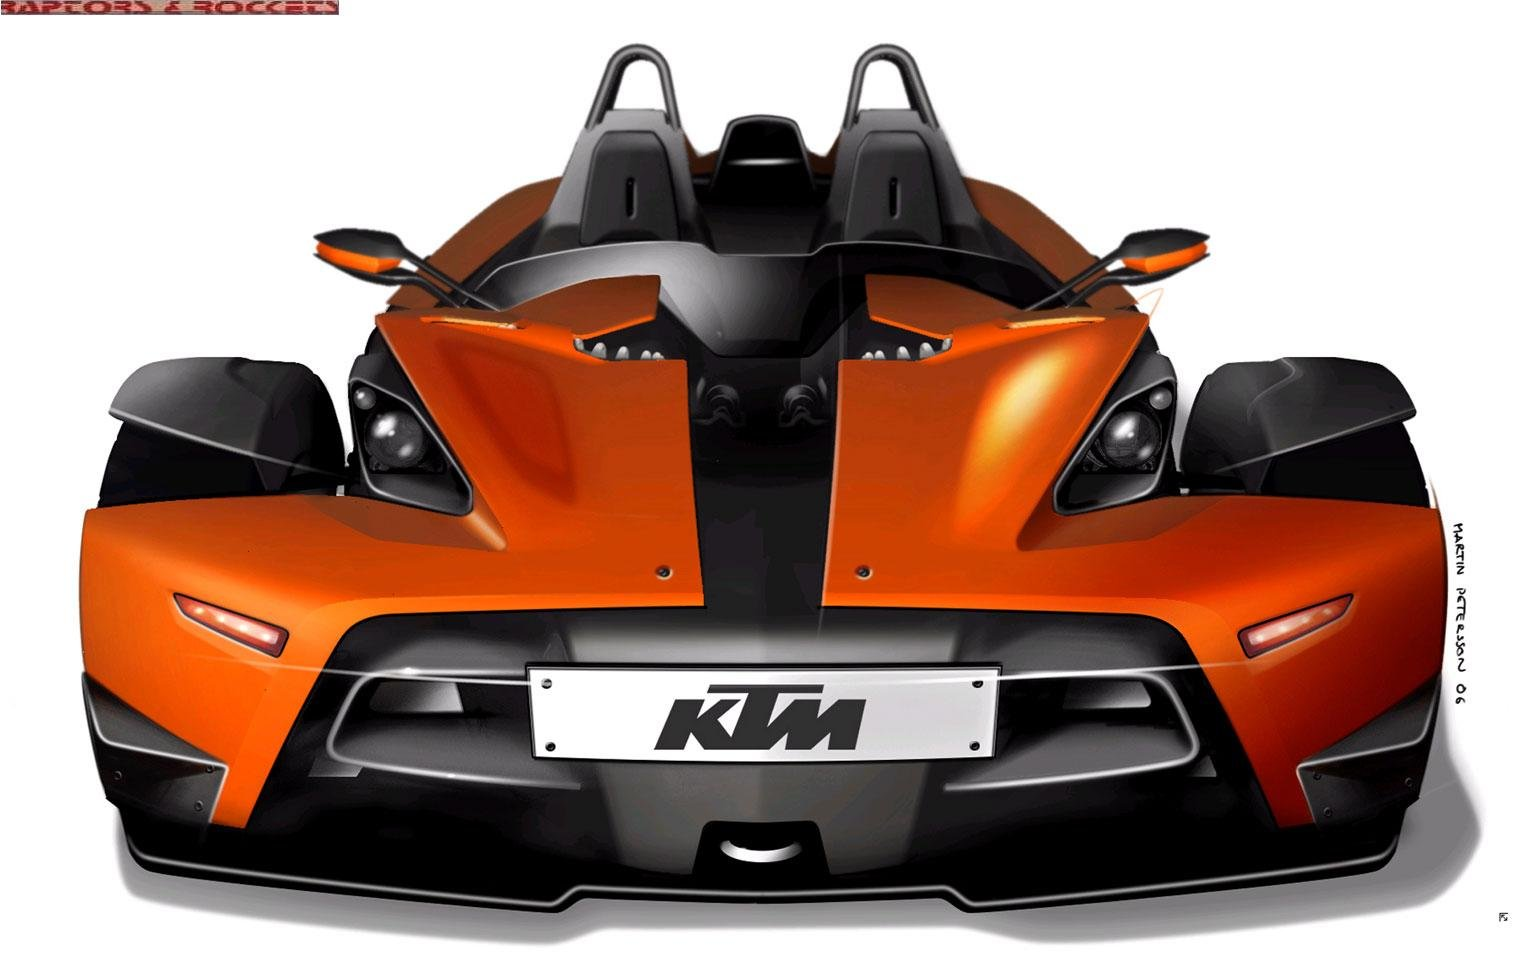 New 2011 Ktm X Bow R Race Car Popular Automotive On This Month